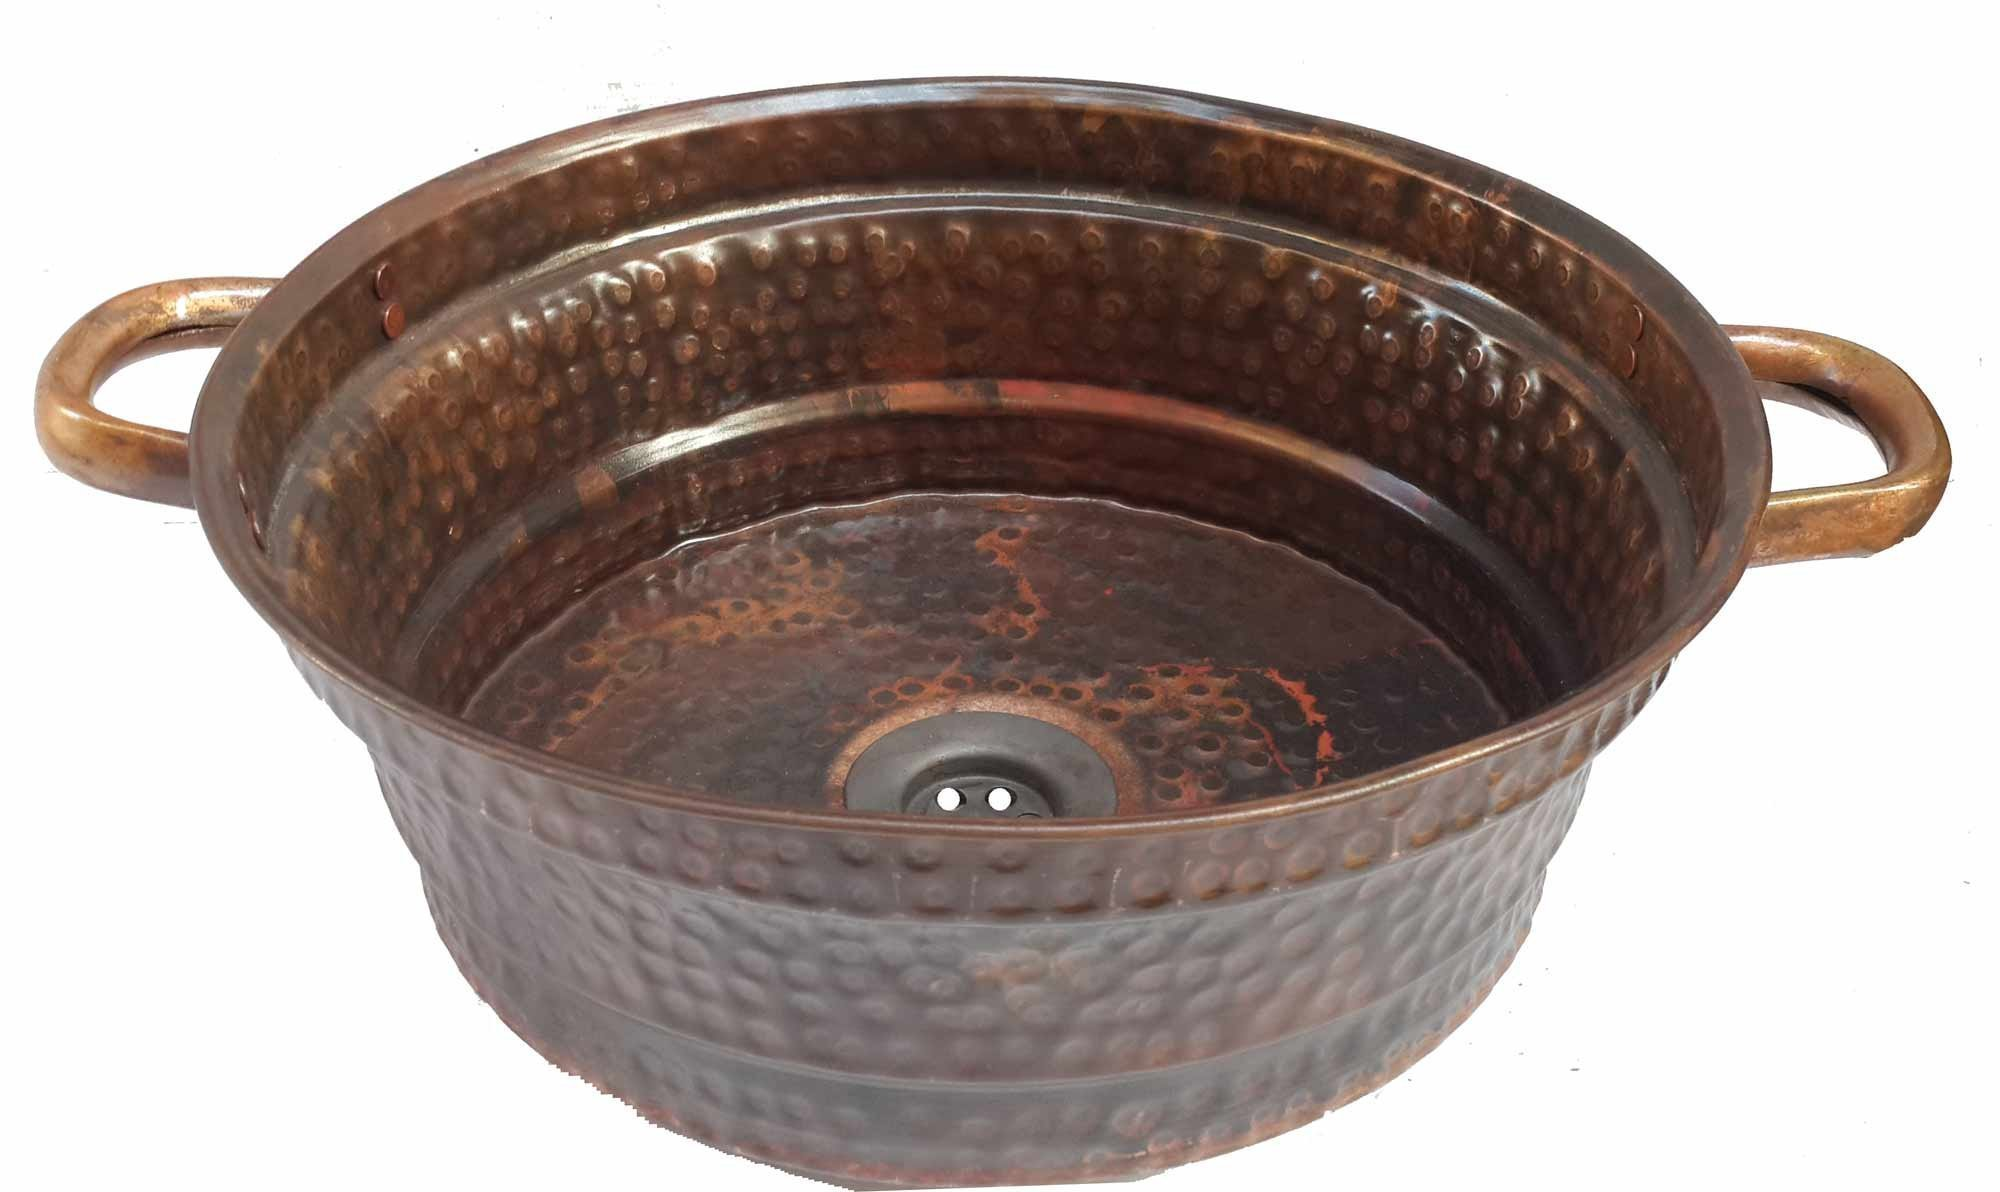 Egypt gift shops Lacquer Vessel Copper Bathroom Sink by Egypt Gift Shops